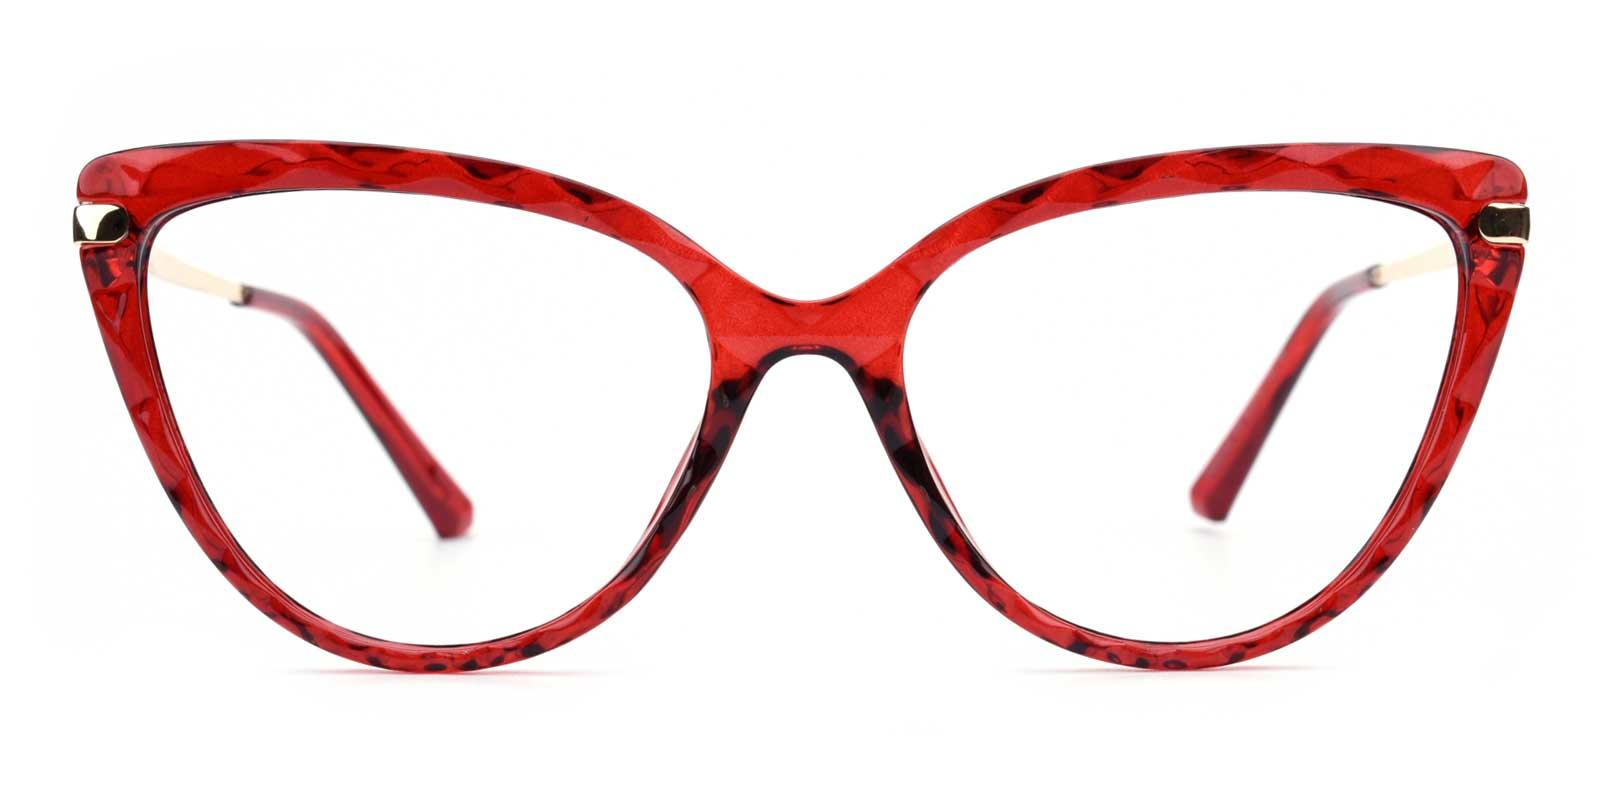 Truda-Red-Cat-Combination-Eyeglasses-additional2